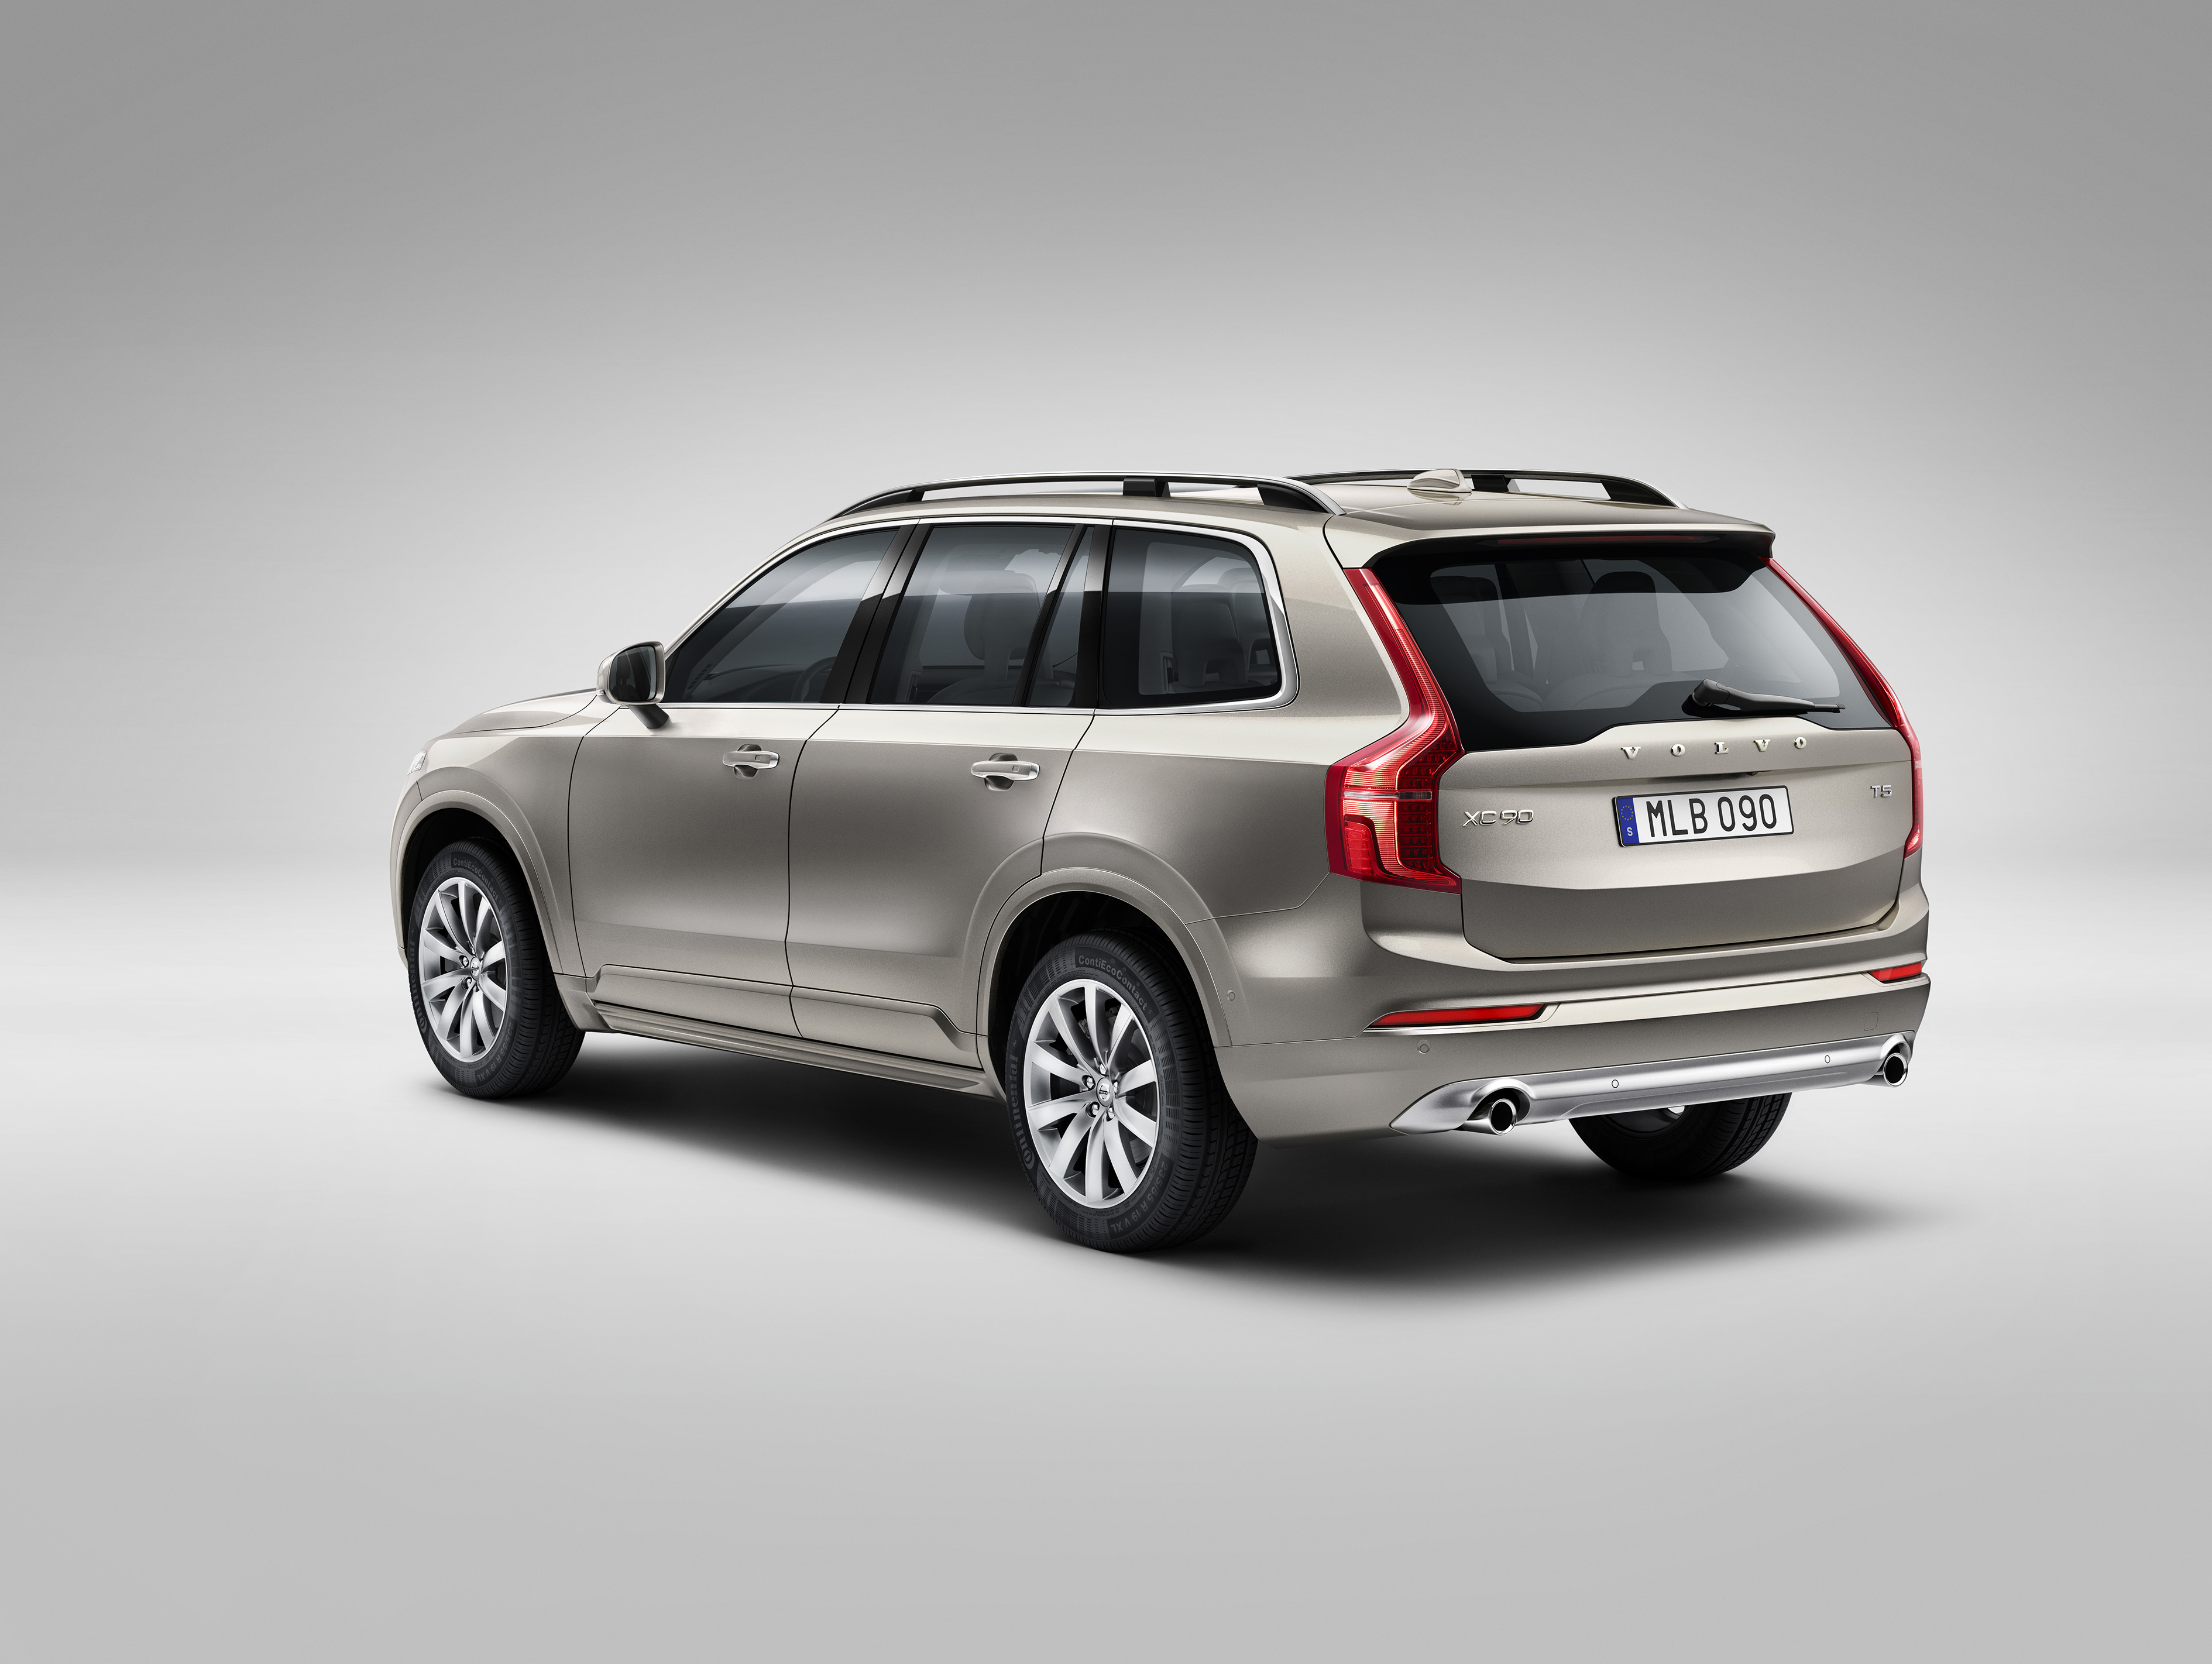 all new volvo xc90 in luminous sand metallic is characterized by exclusive details like 19 wheel s with 10 spoke rims in turbine silver bright as well